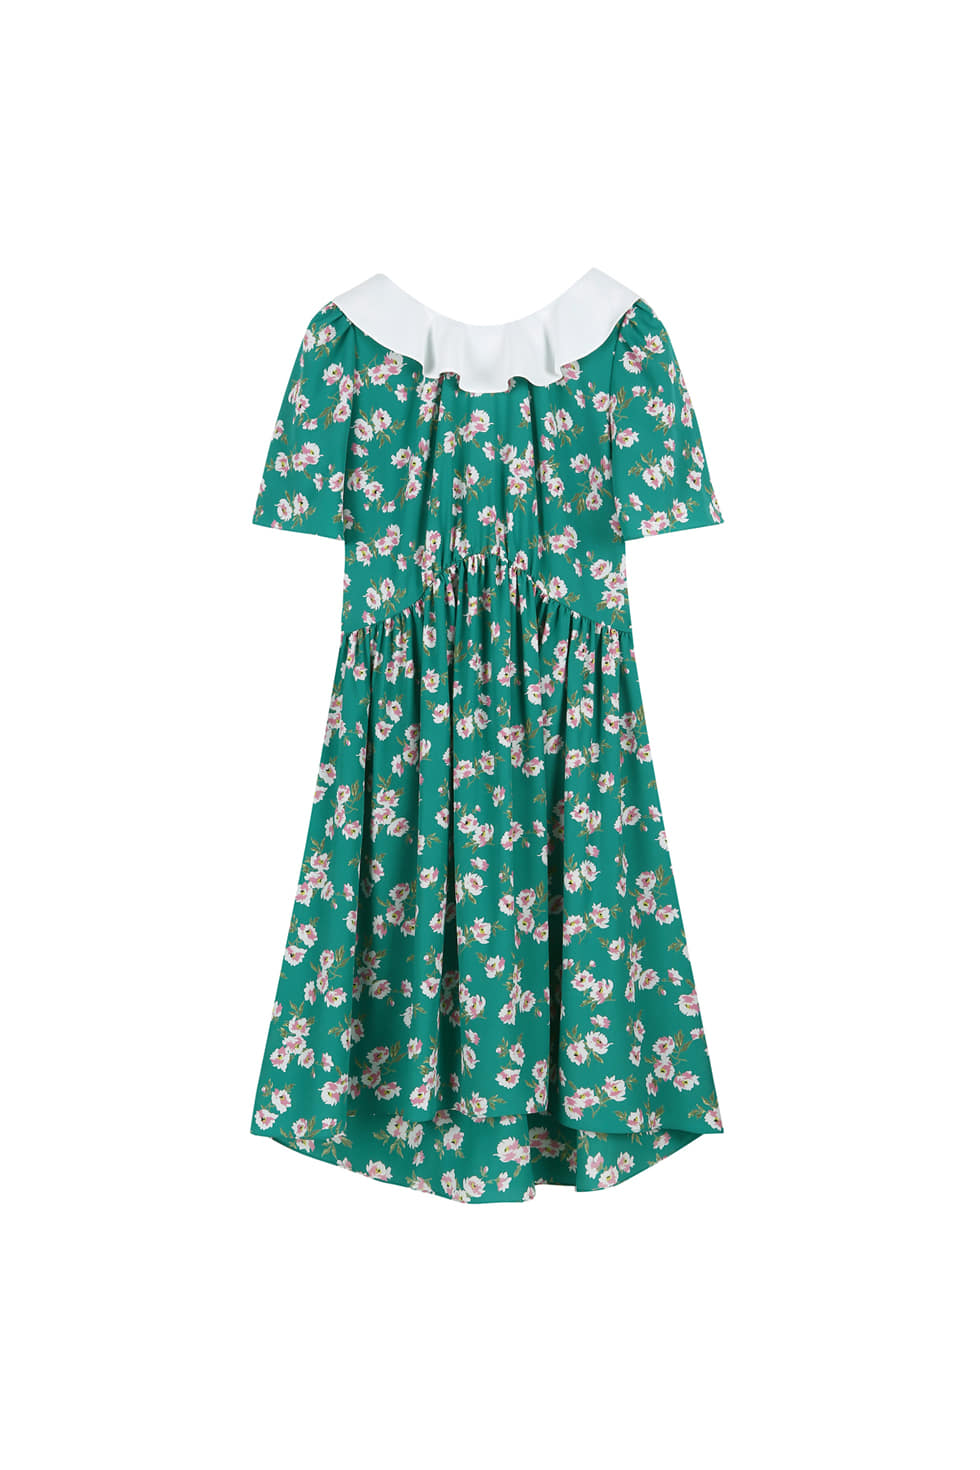 BACK RIBBON FLORAL DRESS - GREEN